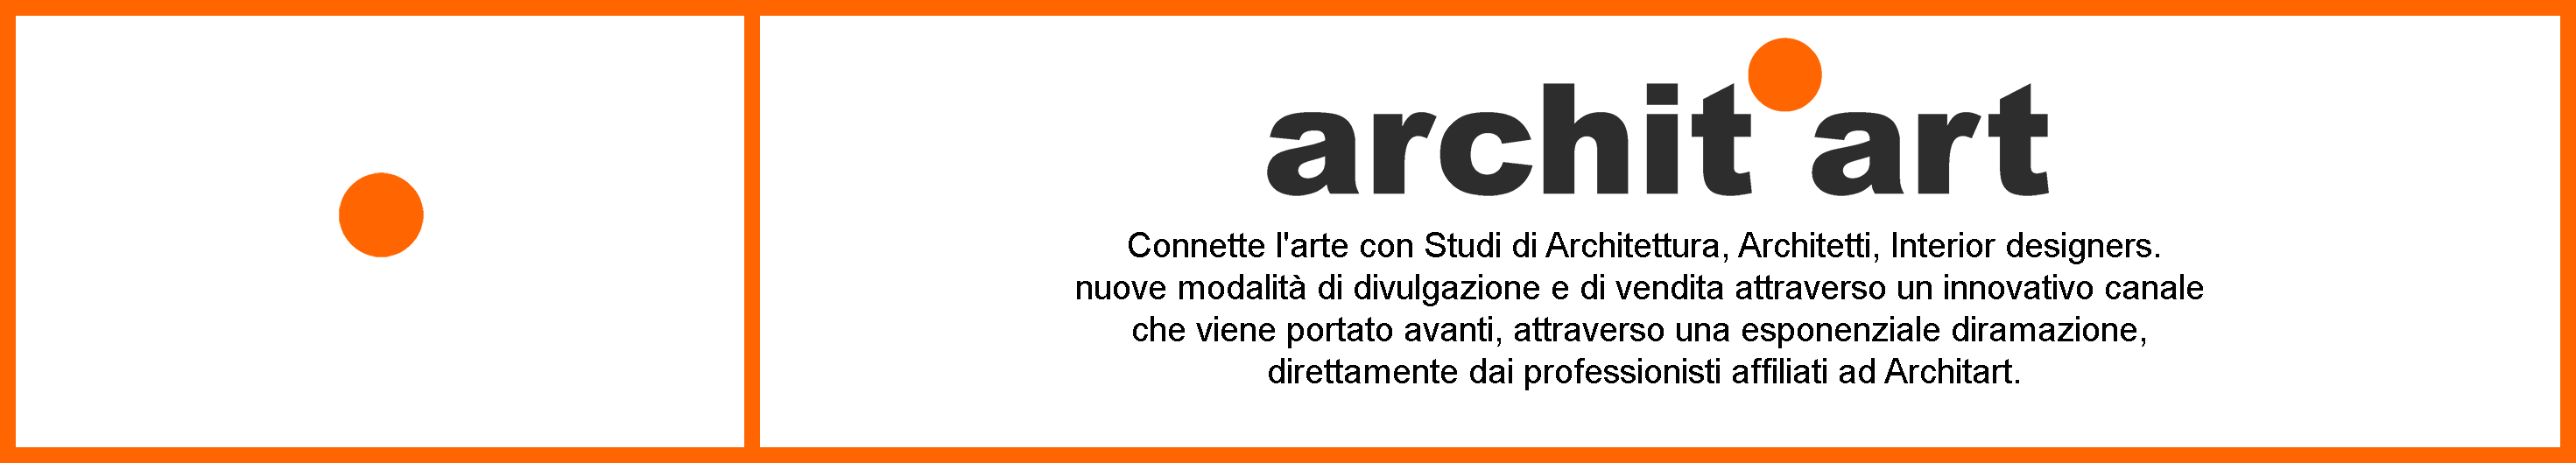 Architartinfo